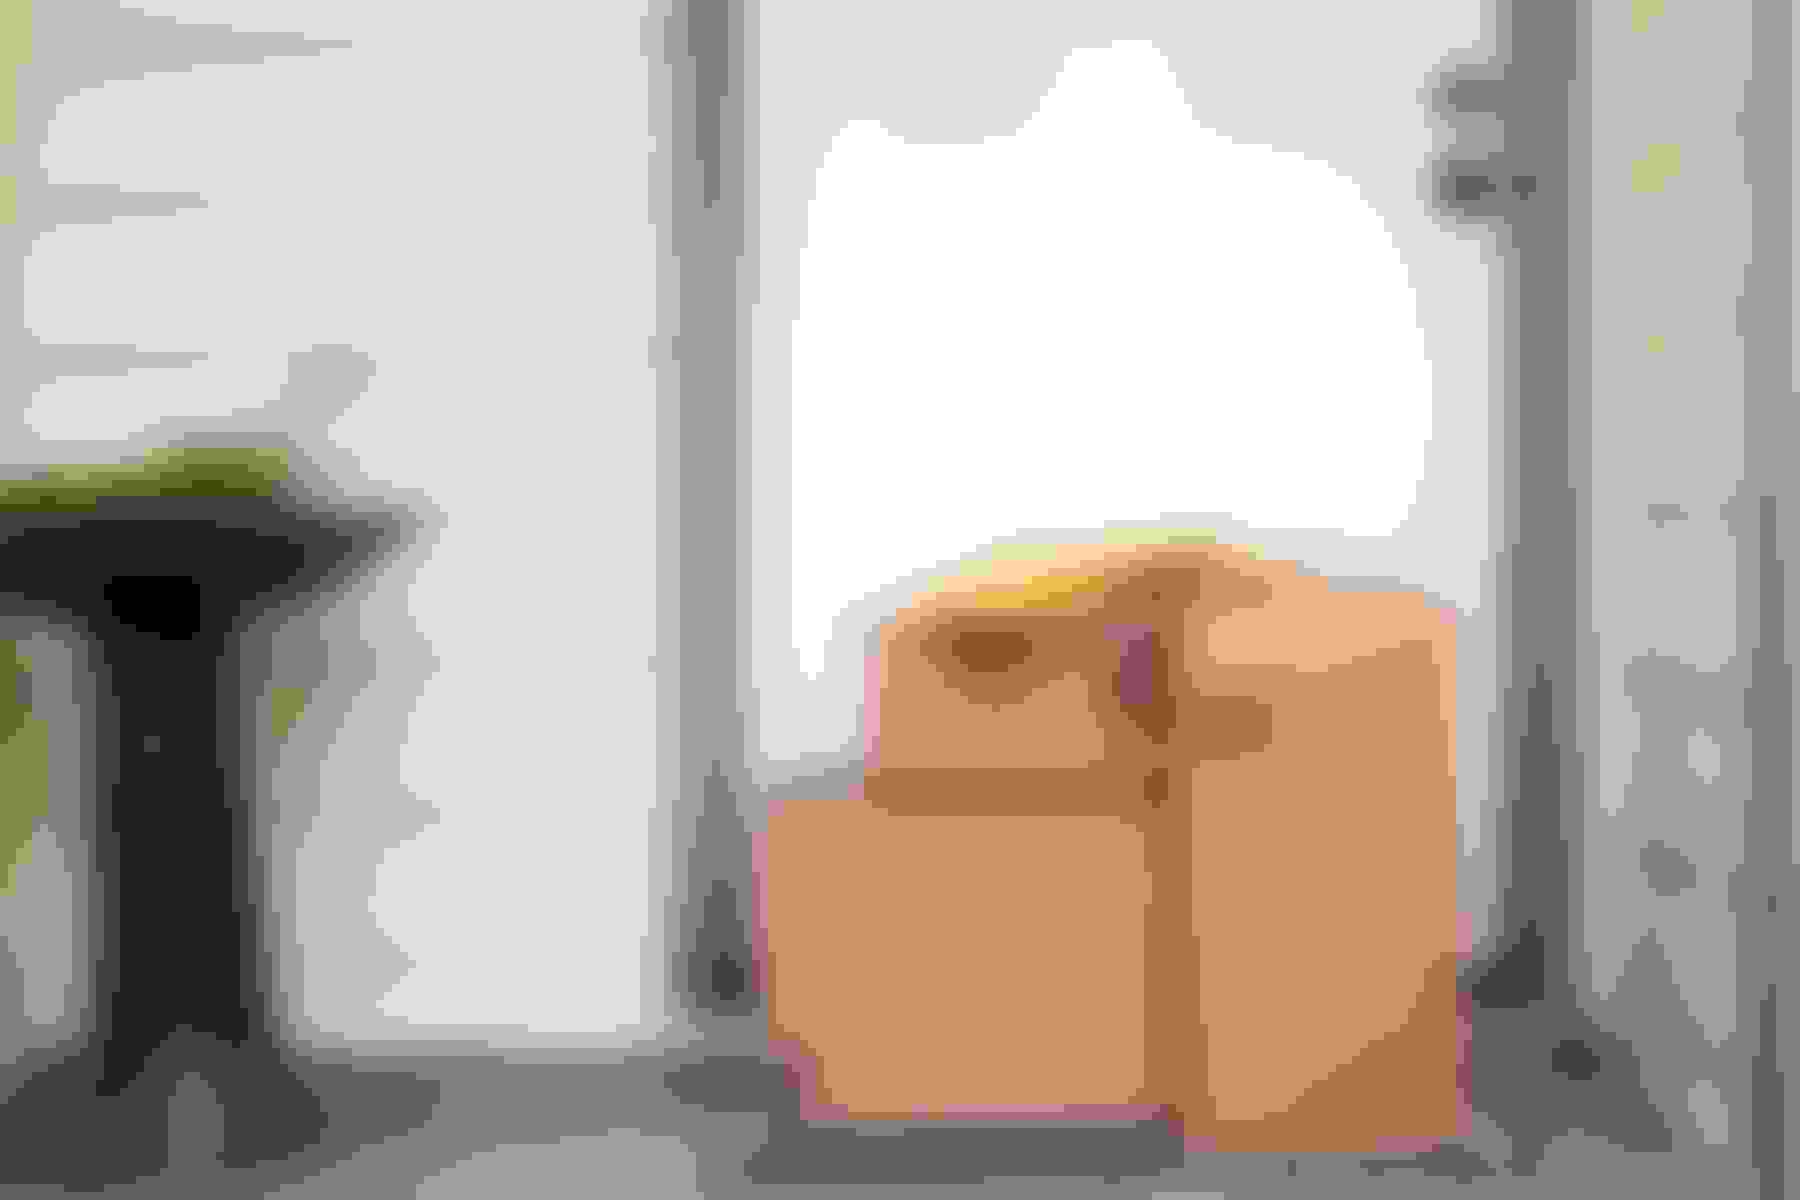 Packages by the front door